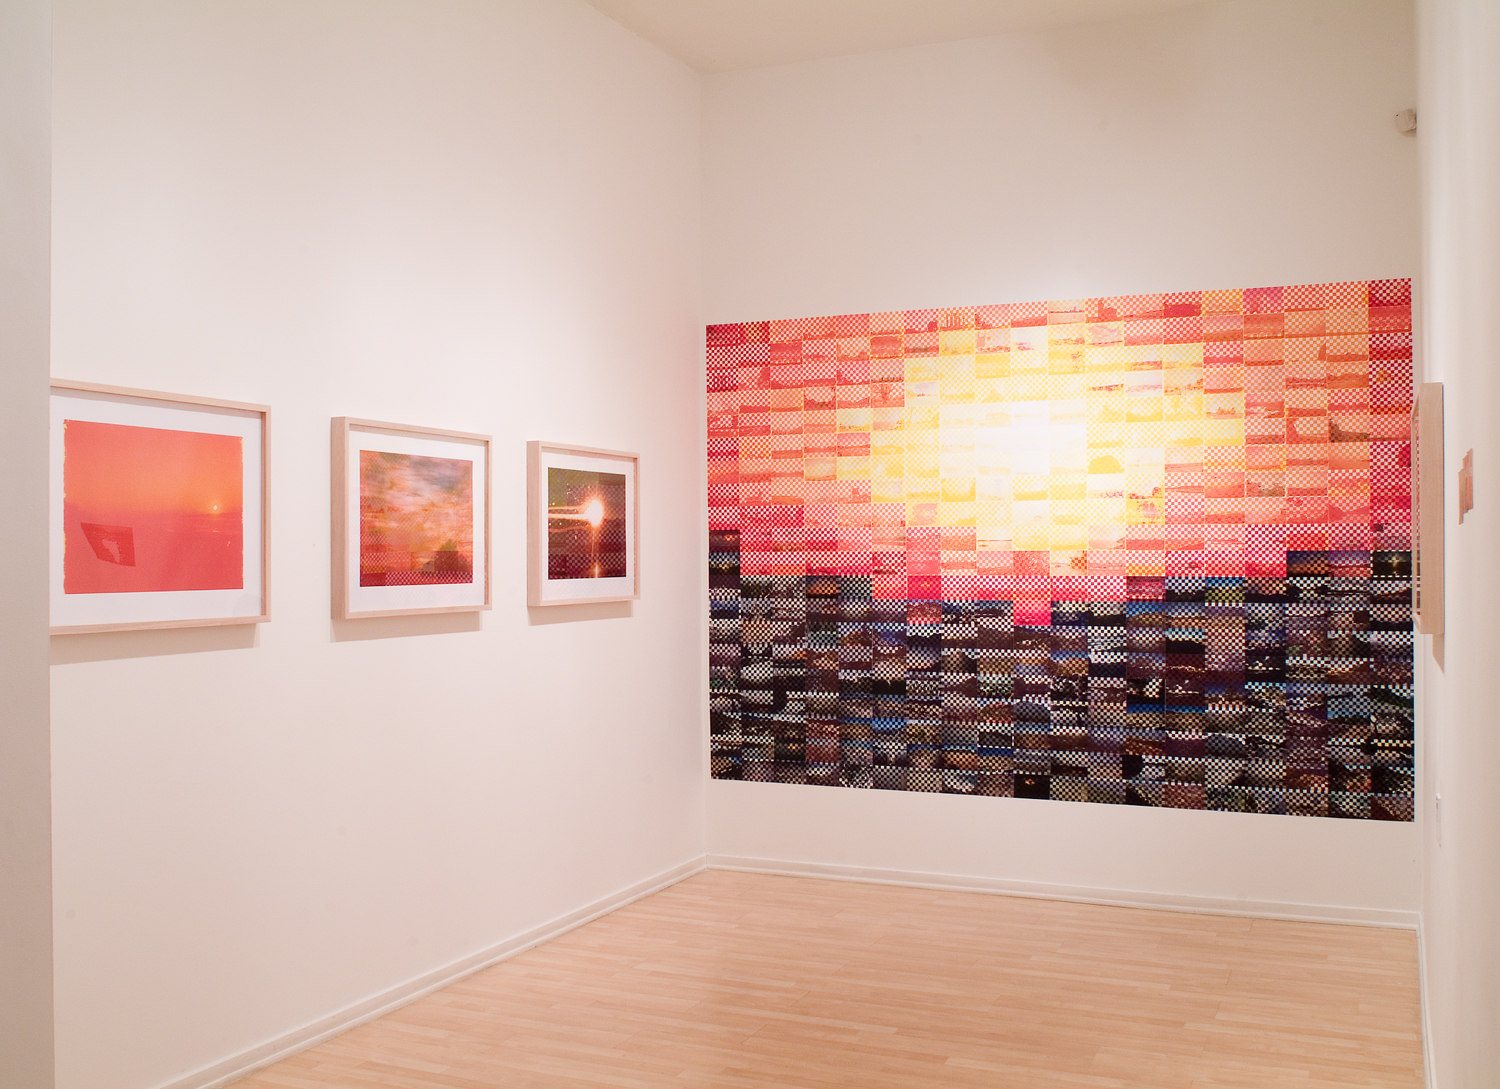 Installation view, Minnesota Center for Photography, 2007